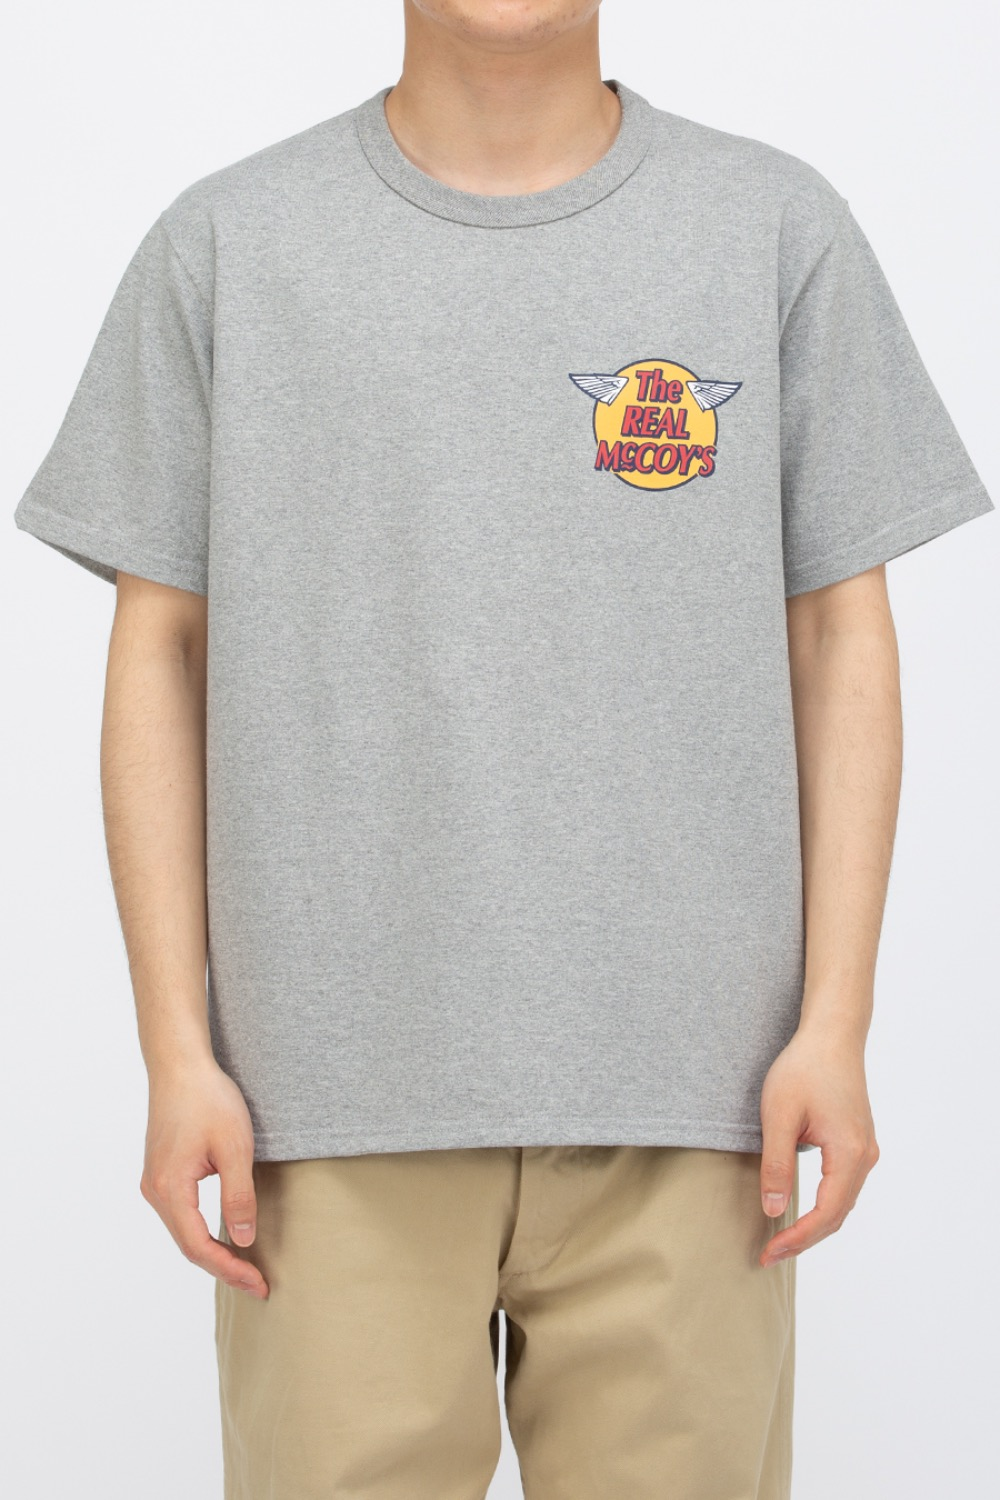 THE REAL MCCOY'S LOGO TEE S/S GREY